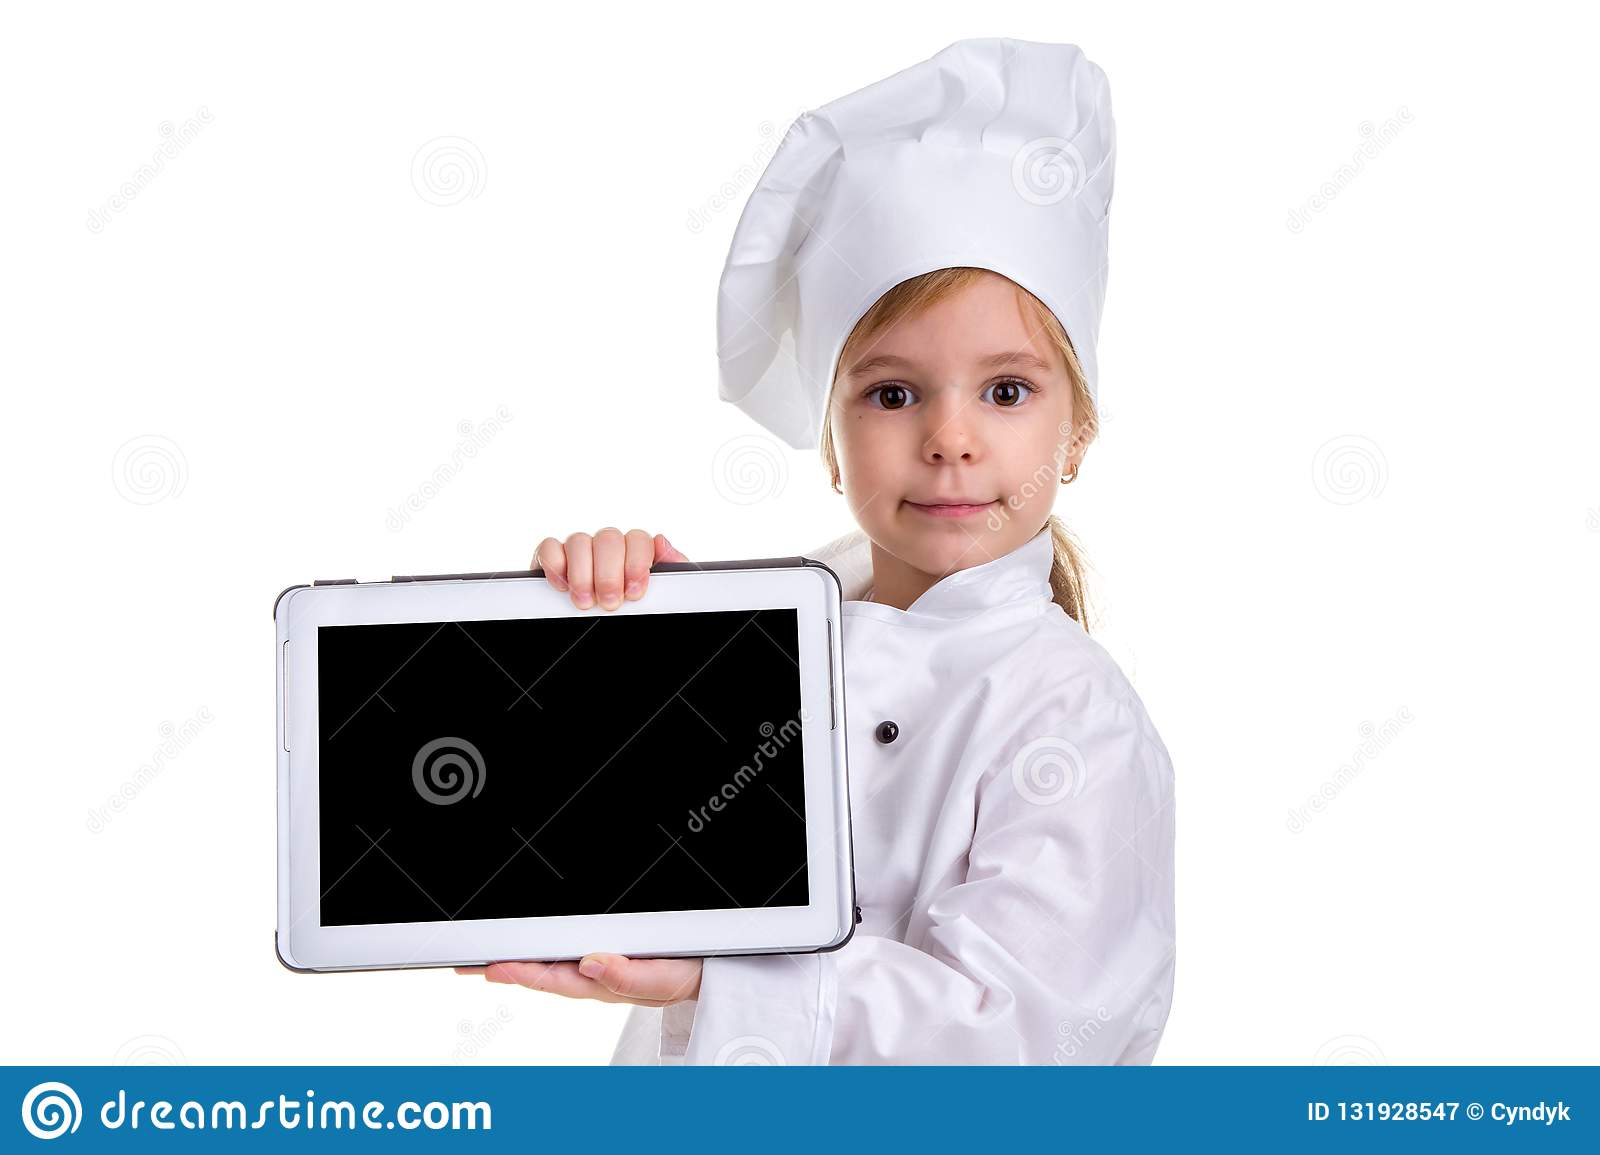 Girl chef white uniform isolated on white background. Showing the empty black ipad screen, looking at the camera